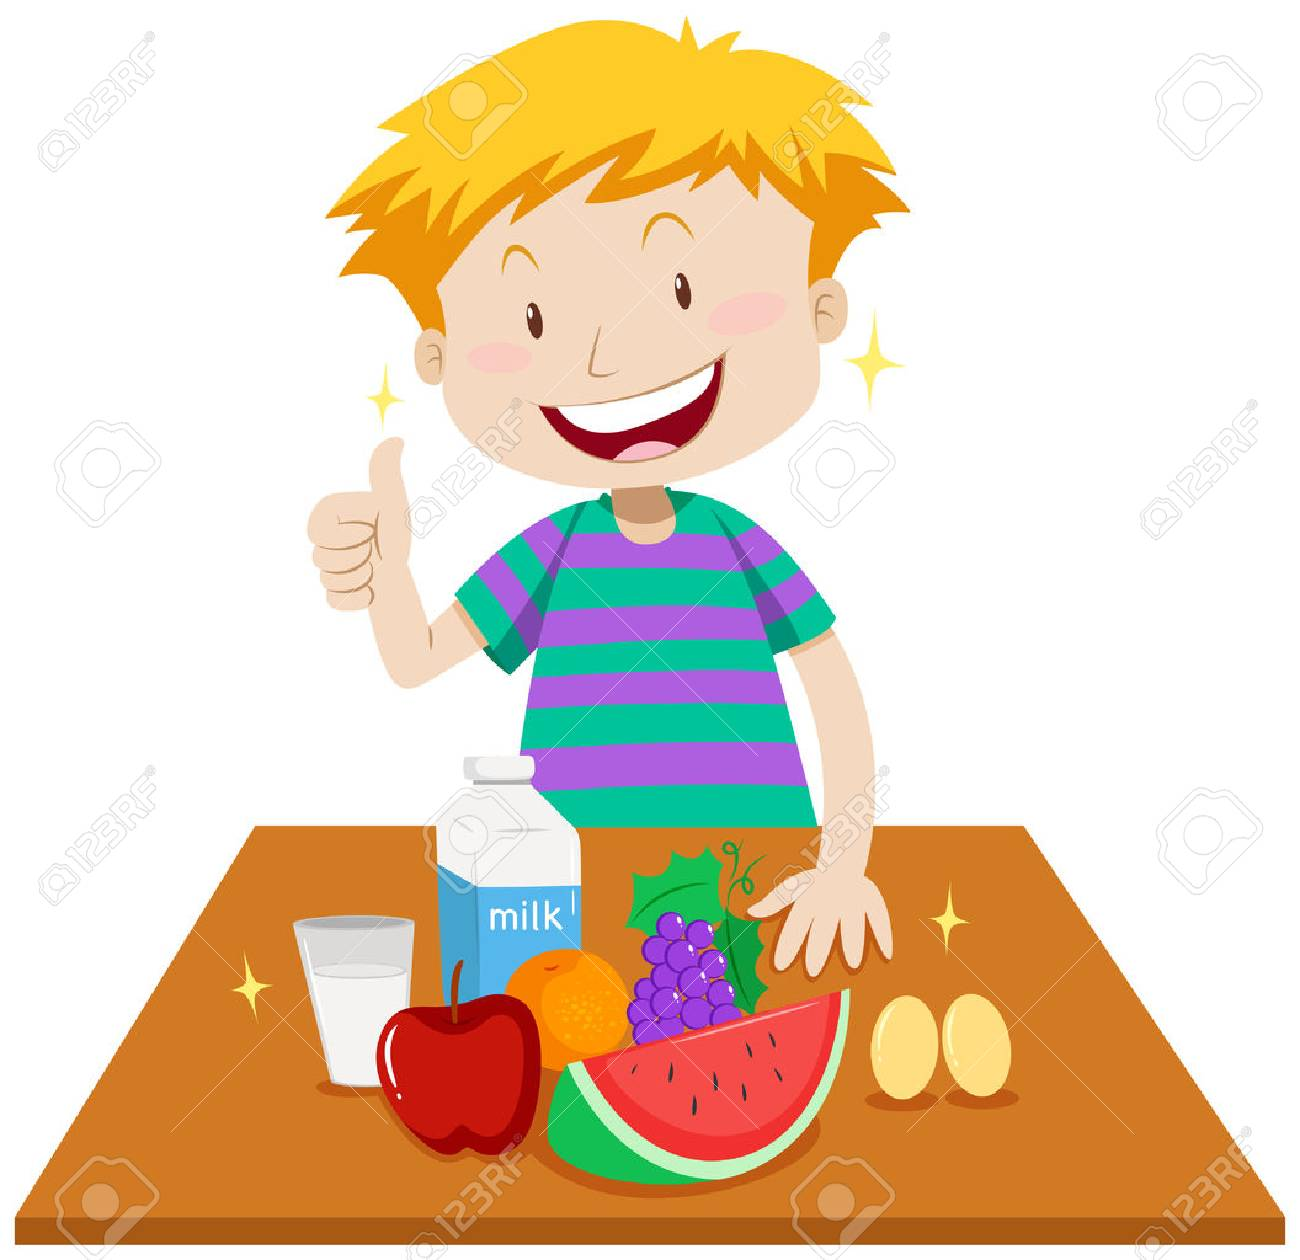 Little boy and healthy food on table illustration.